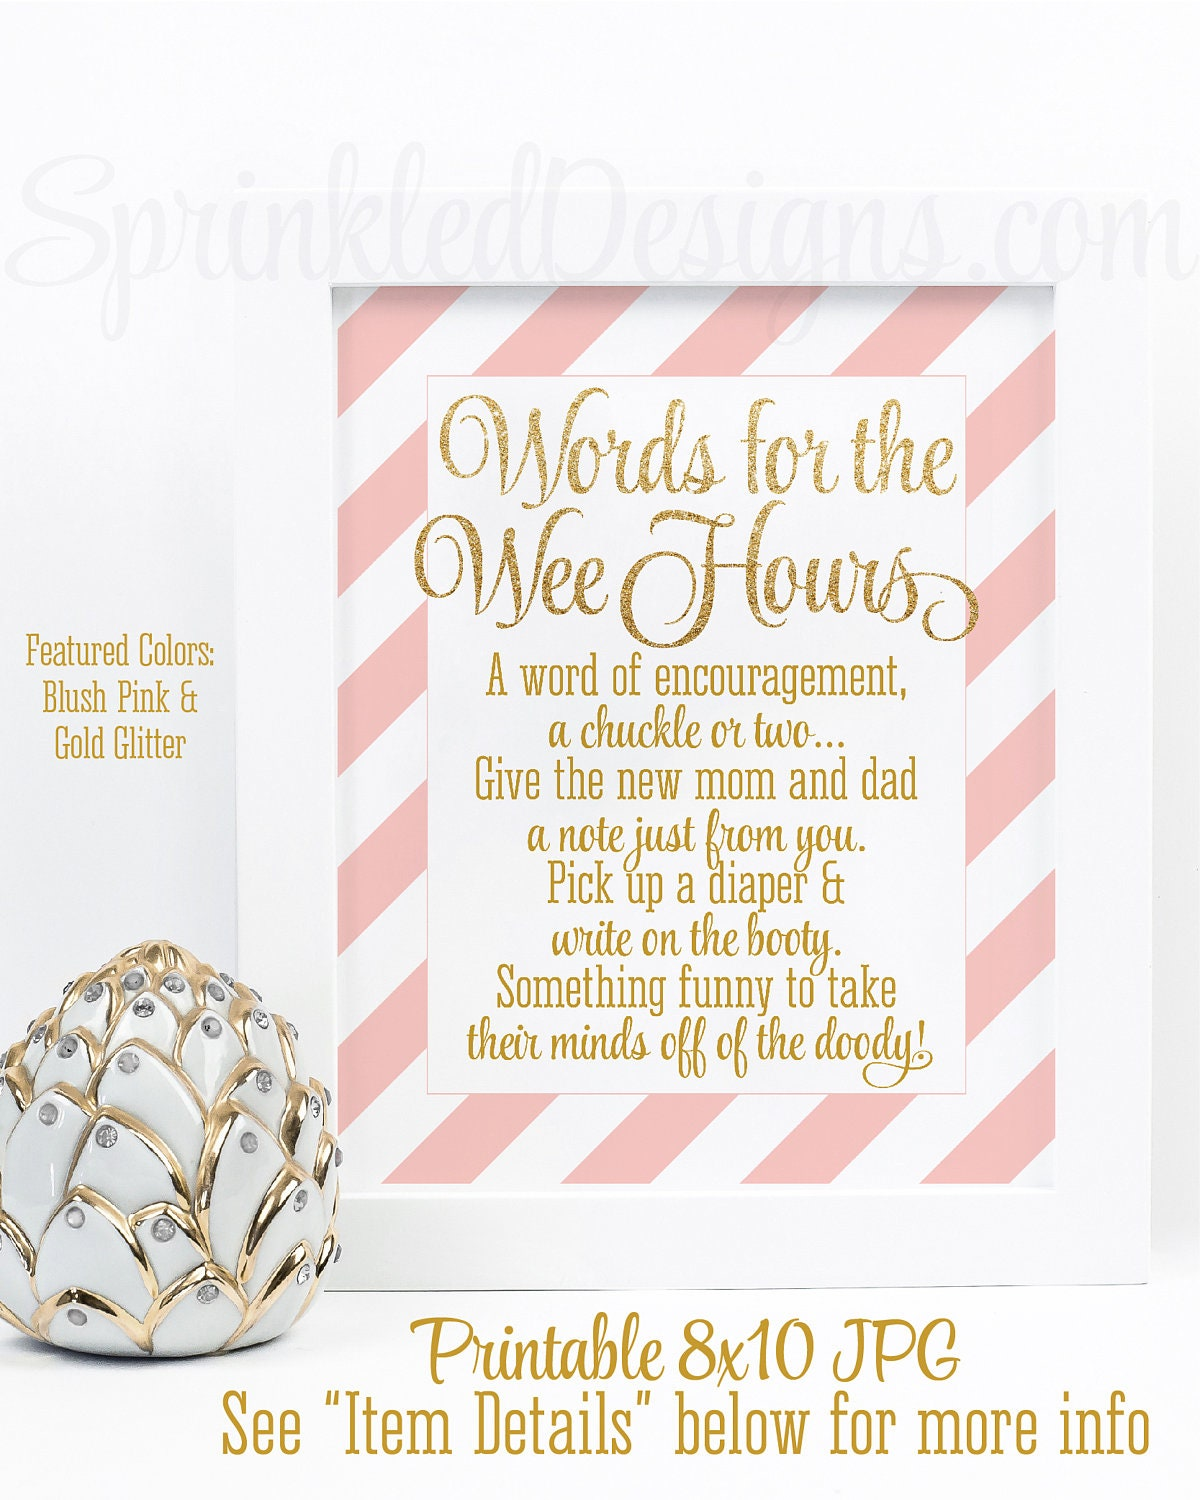 Baby shower games words for the wee hours words of wisdom zoom kristyandbryce Image collections